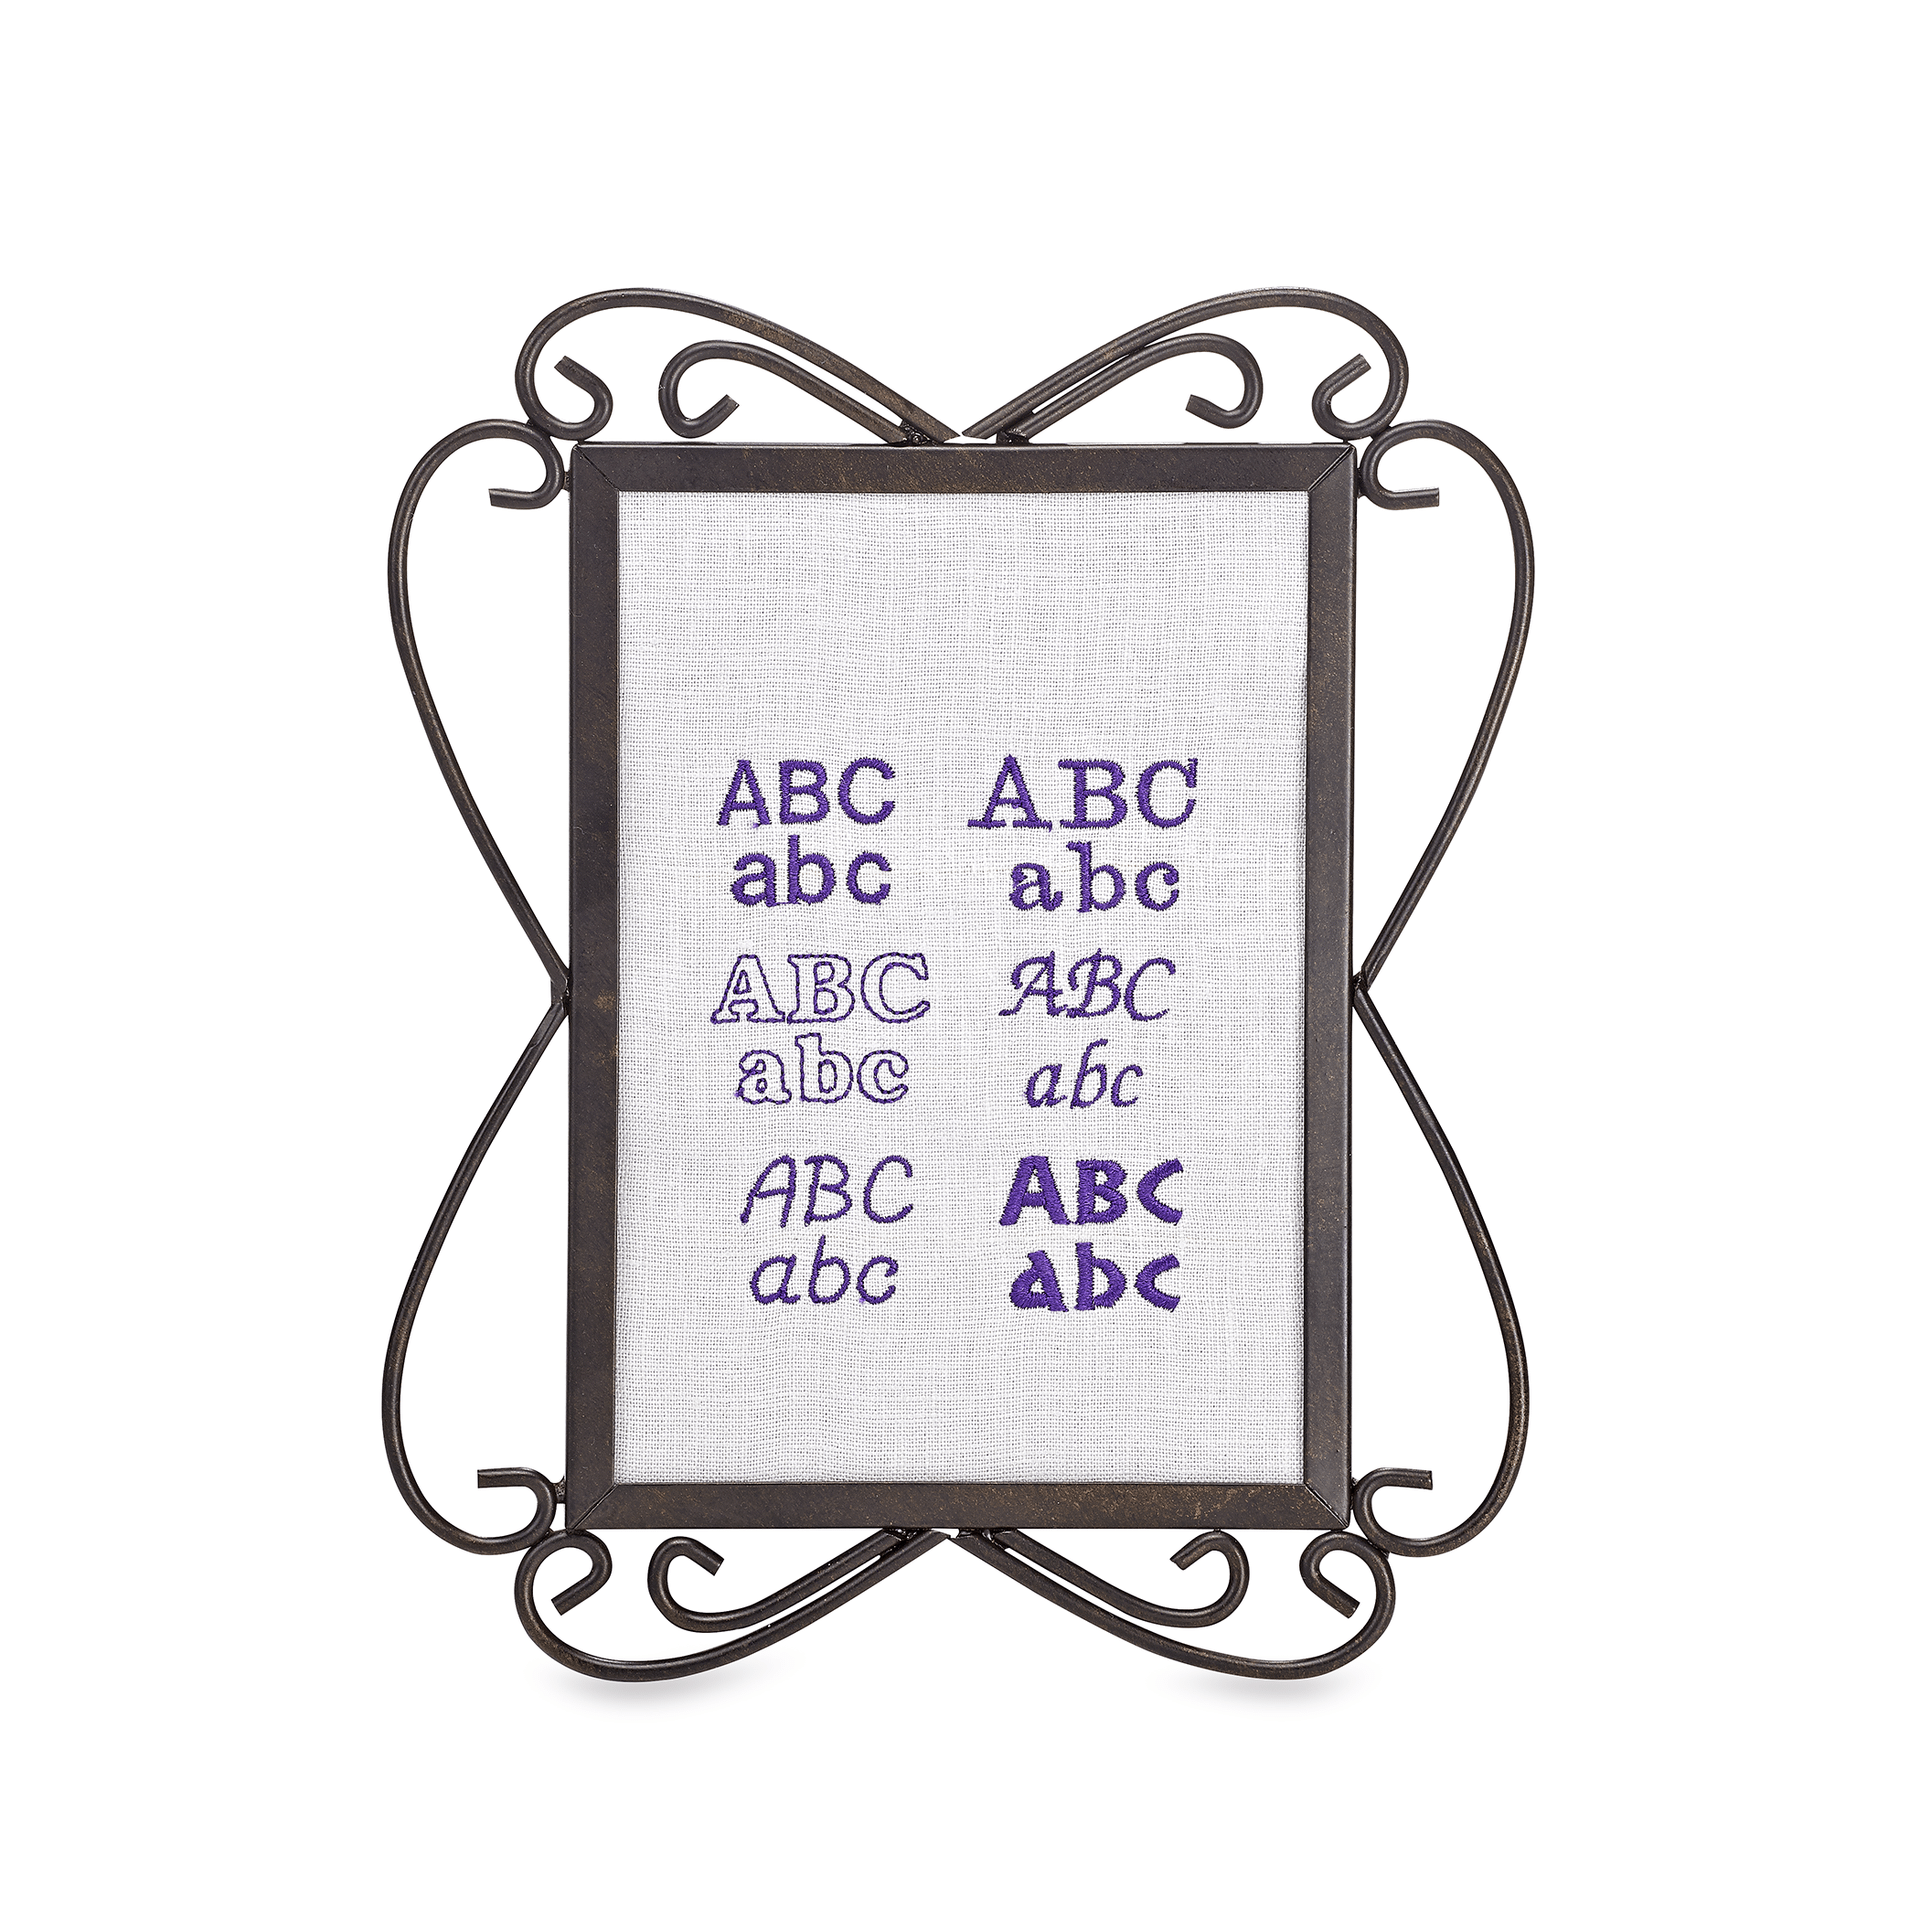 6 Embroidery lettering fonts